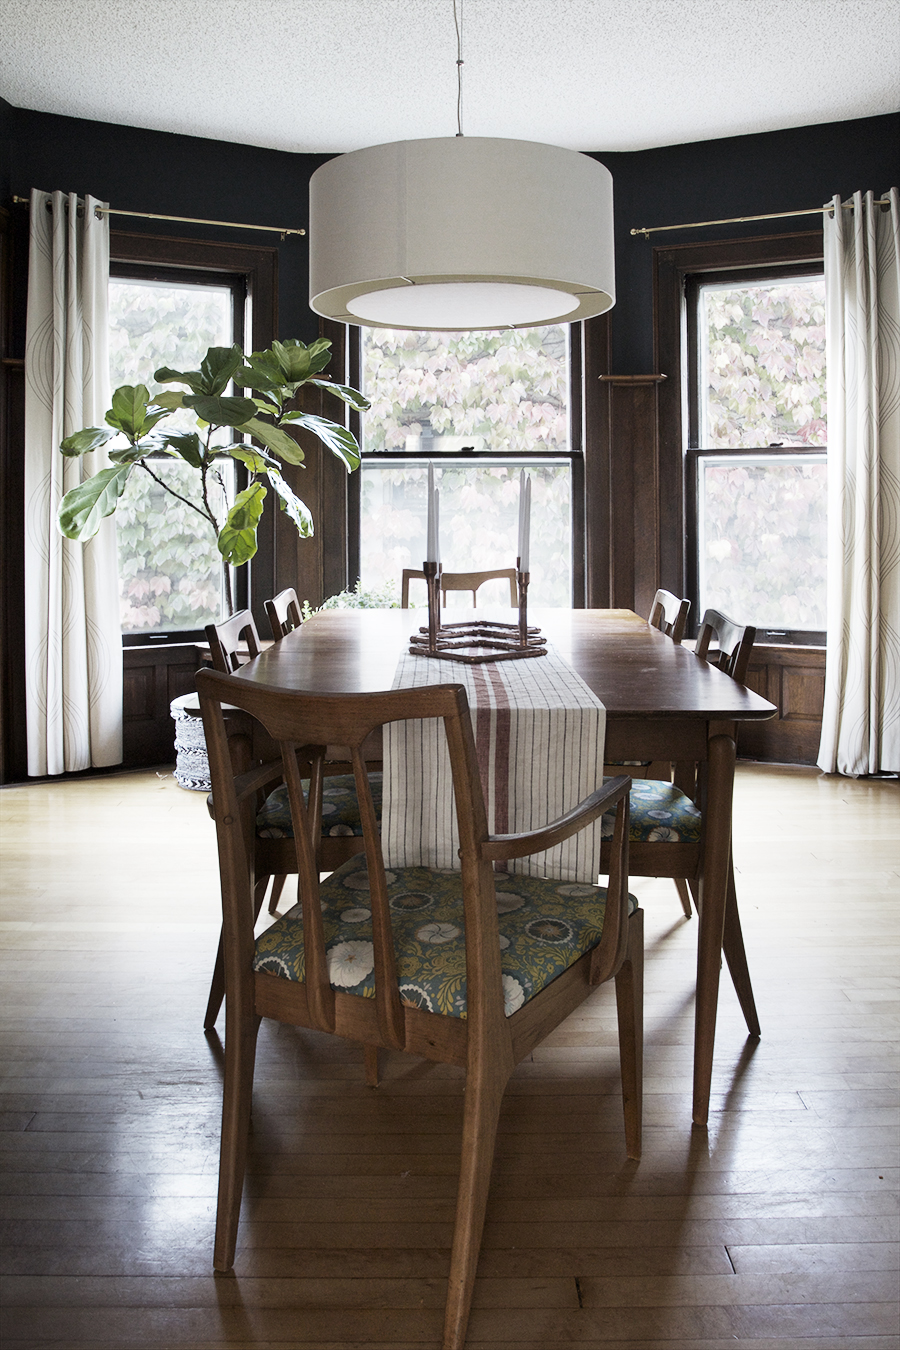 Dark Walls Compliment Unpainted Natural Woodwork | Deuce Cities Henhouse